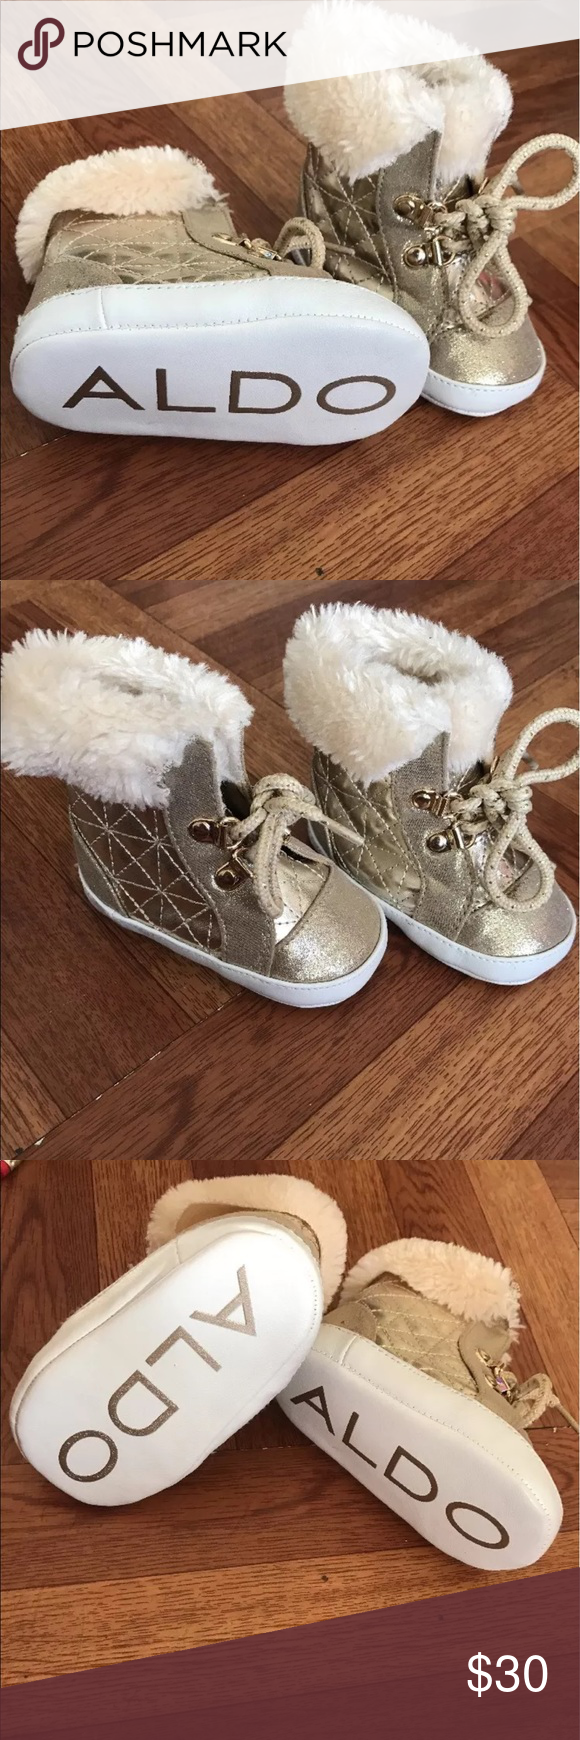 e276506d46 Aldo baby walkers Aldo baby shoes size 3 paypal only plus free shipping Aldo  Shoes Sneakers